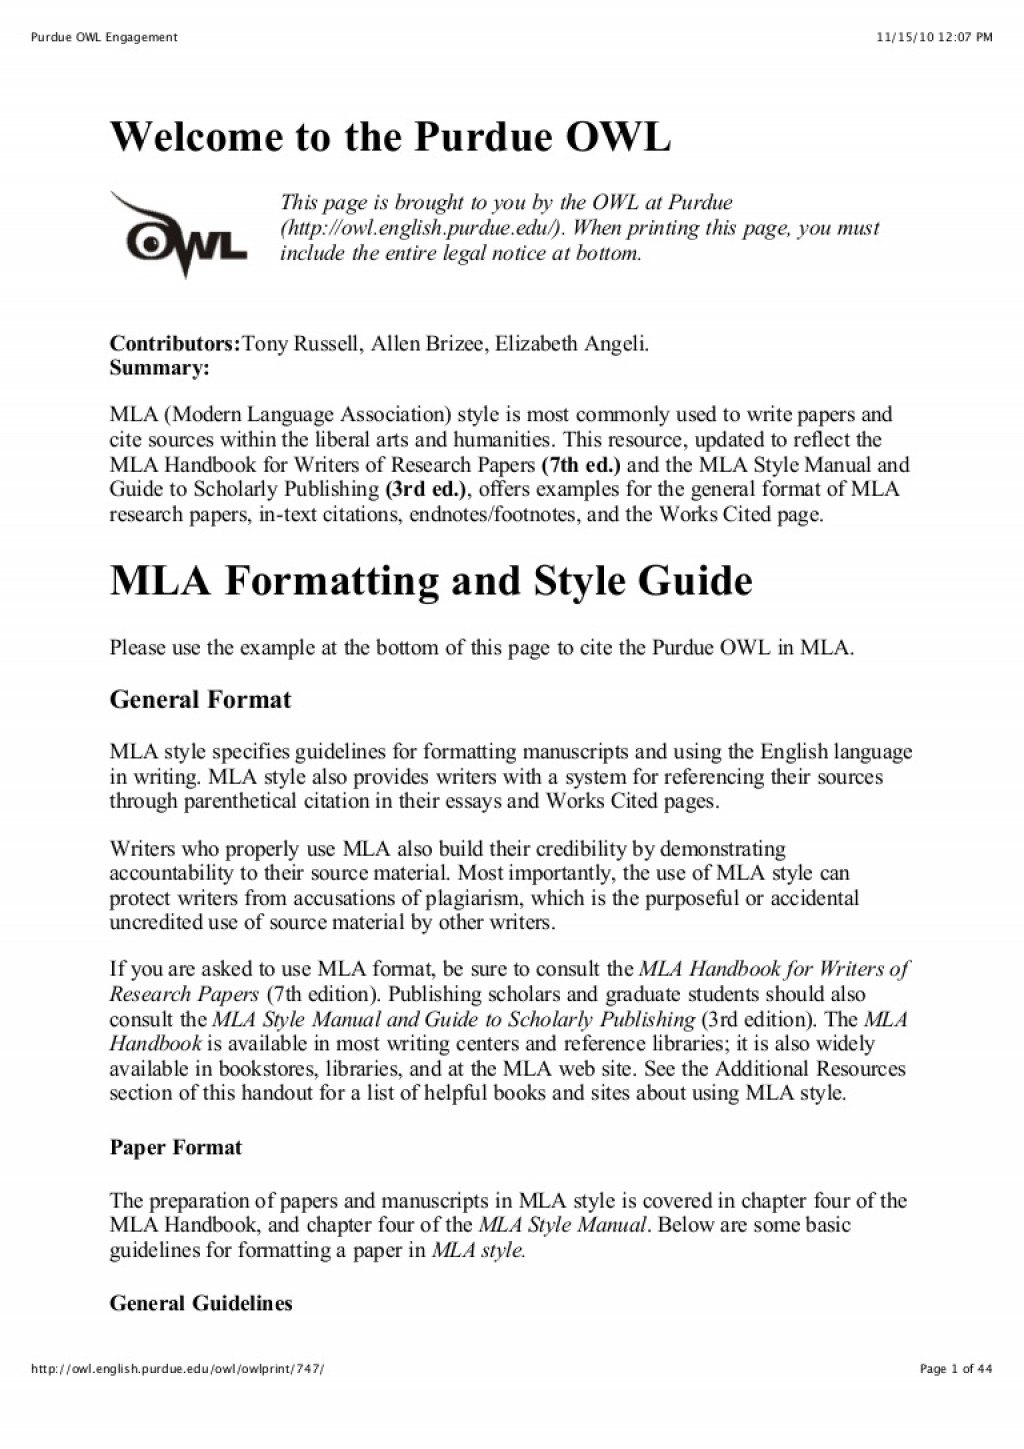 026 Citation Page For Research Paper Purdueowlmlastyleguide Phpapp02 Thumbnail Wonderful How To Make A Works Cited About The Little Rock Nine Large